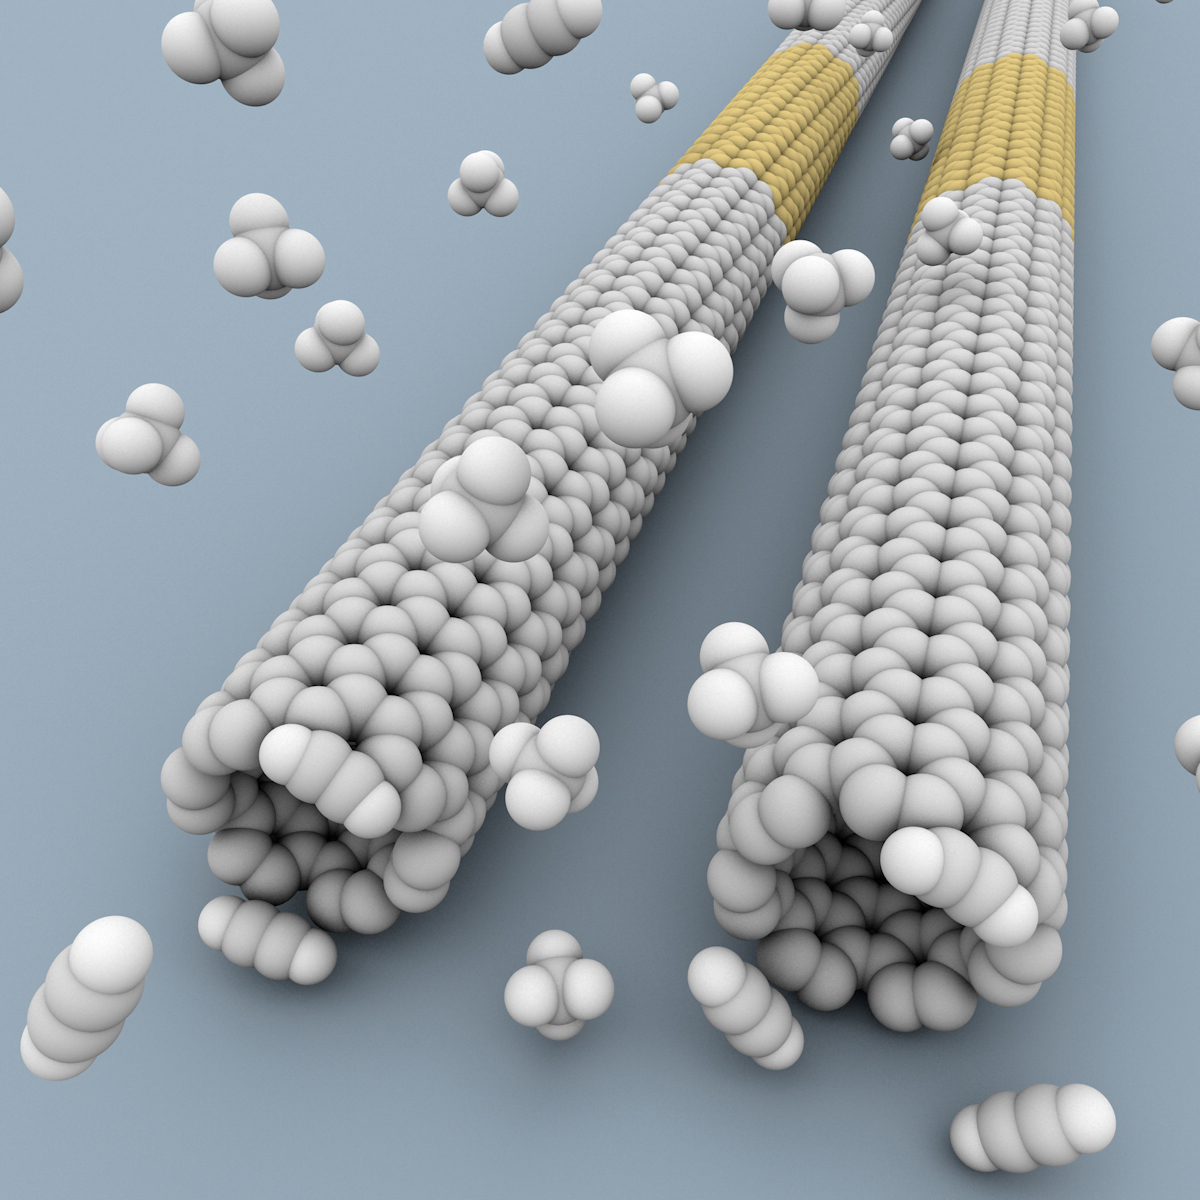 Nanotubes assemble! Rice introduces Teslaphoresis